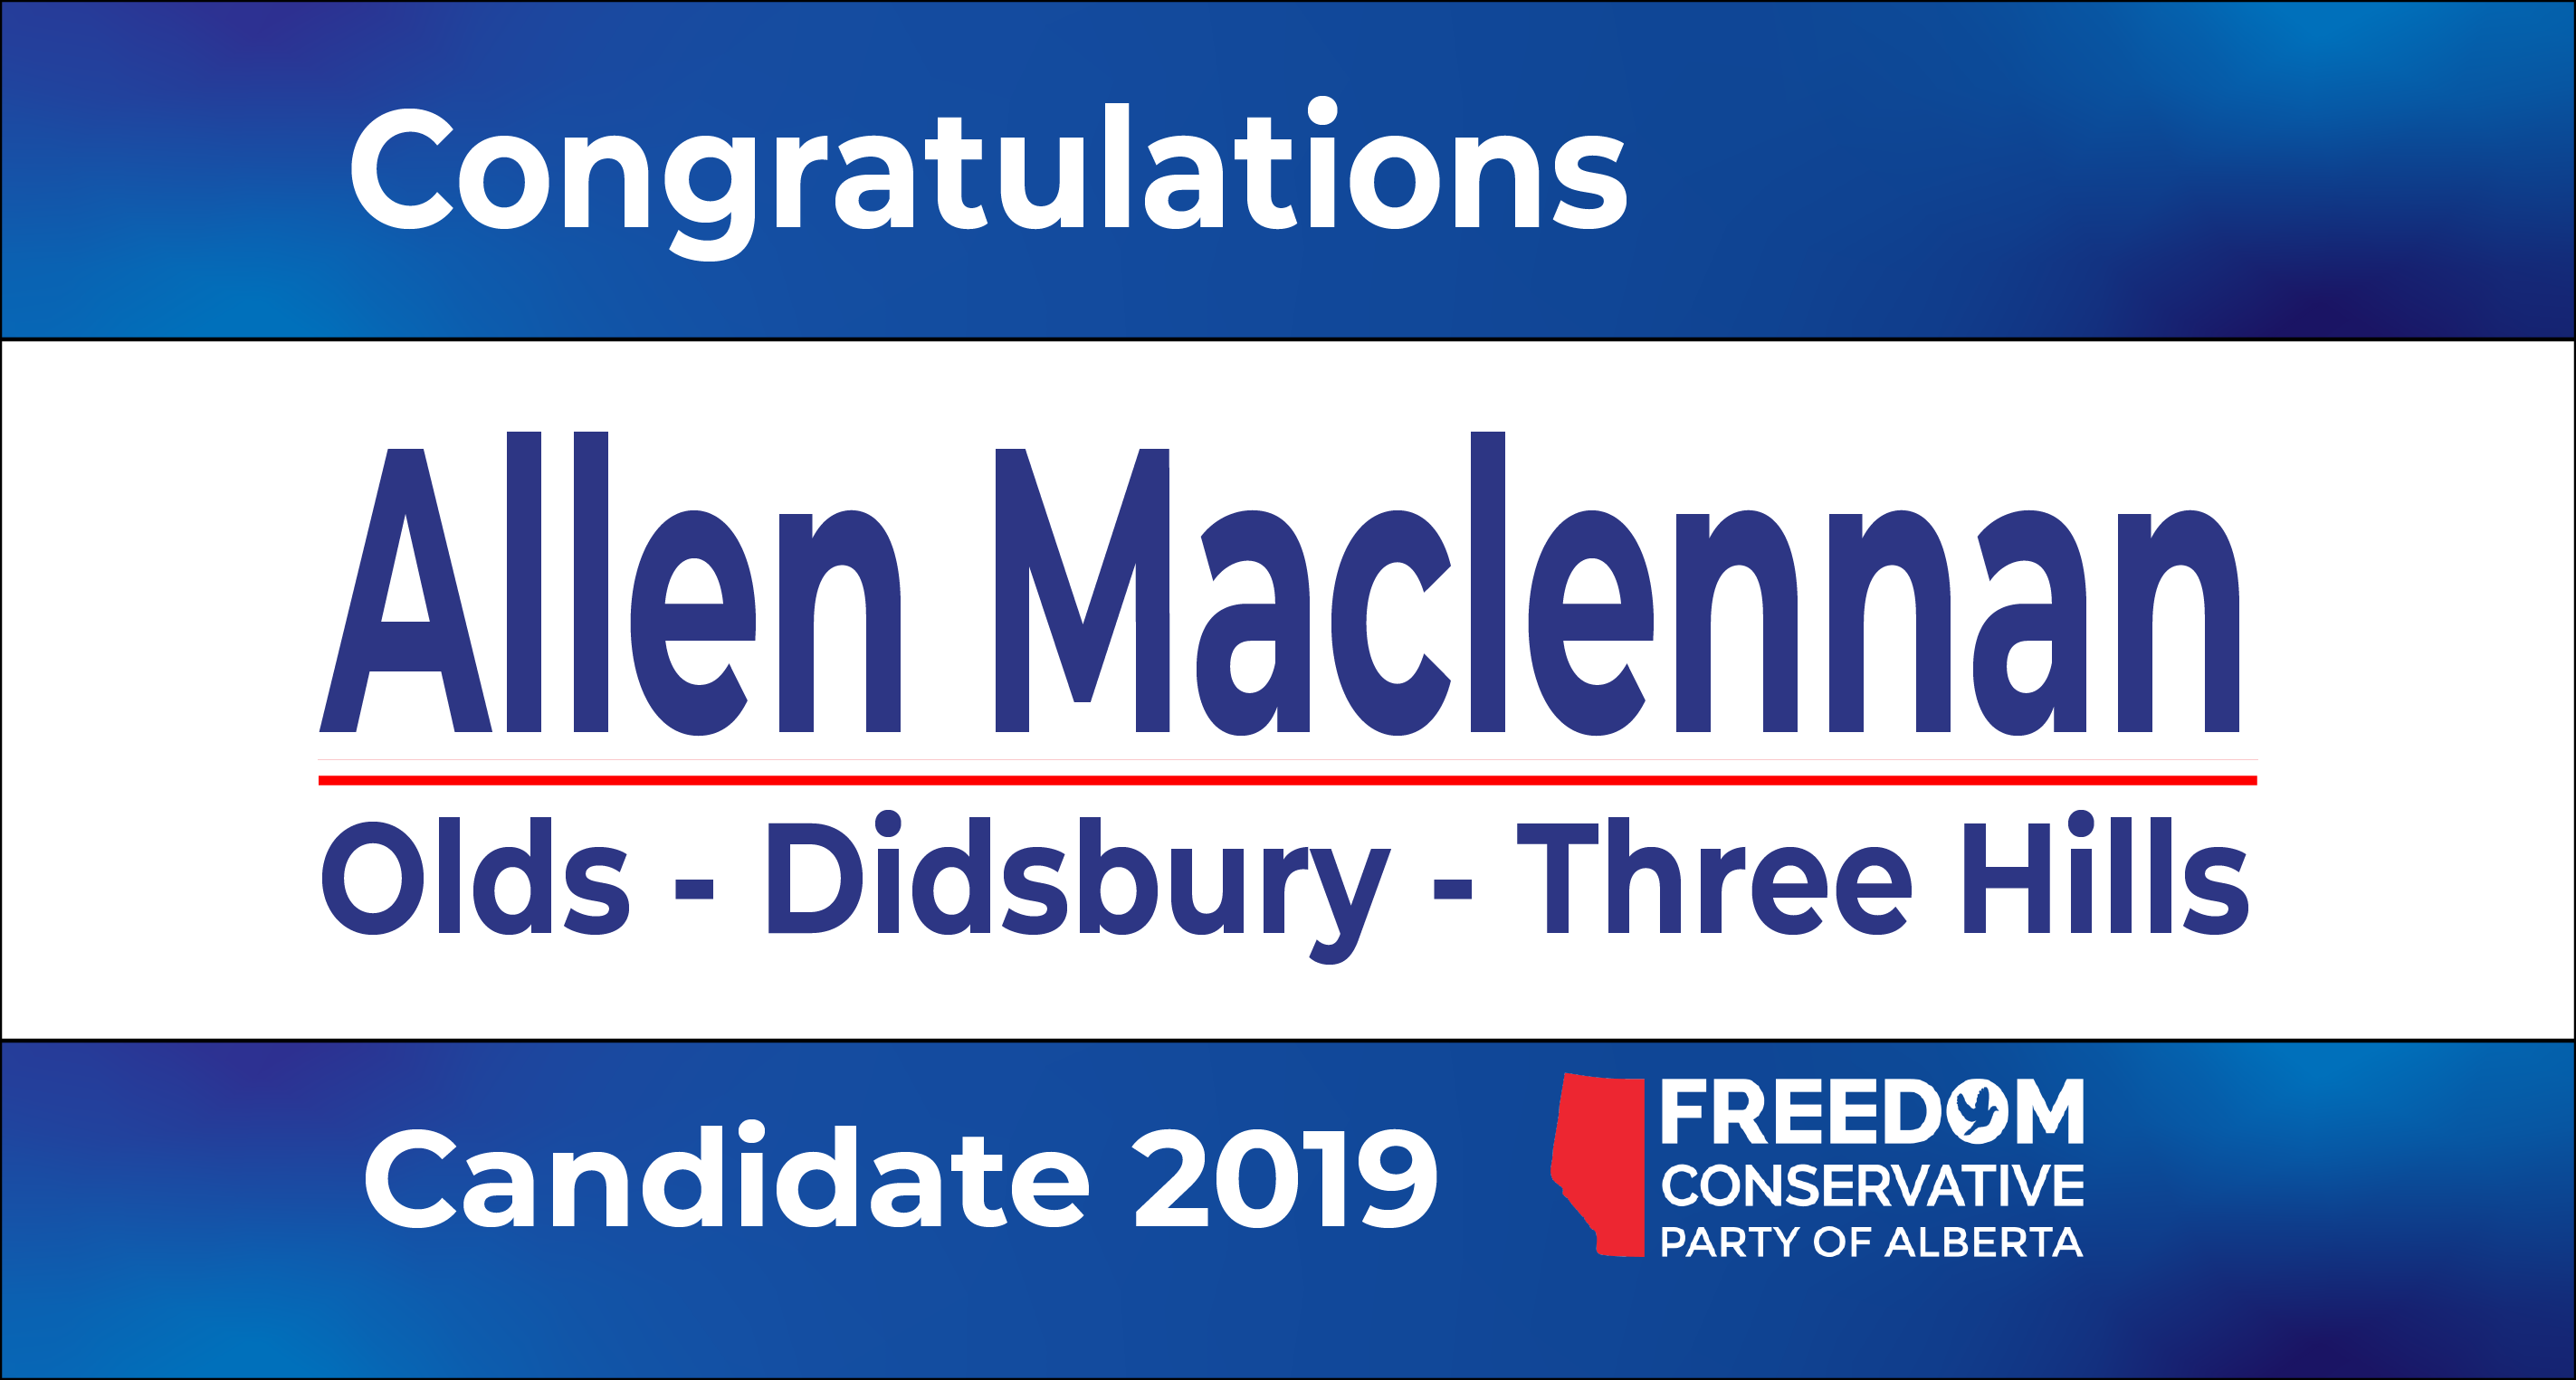 RELEASE: Allen Maclennon Nominated as FCP Candidate for Olds – Didsbury – Three Hills